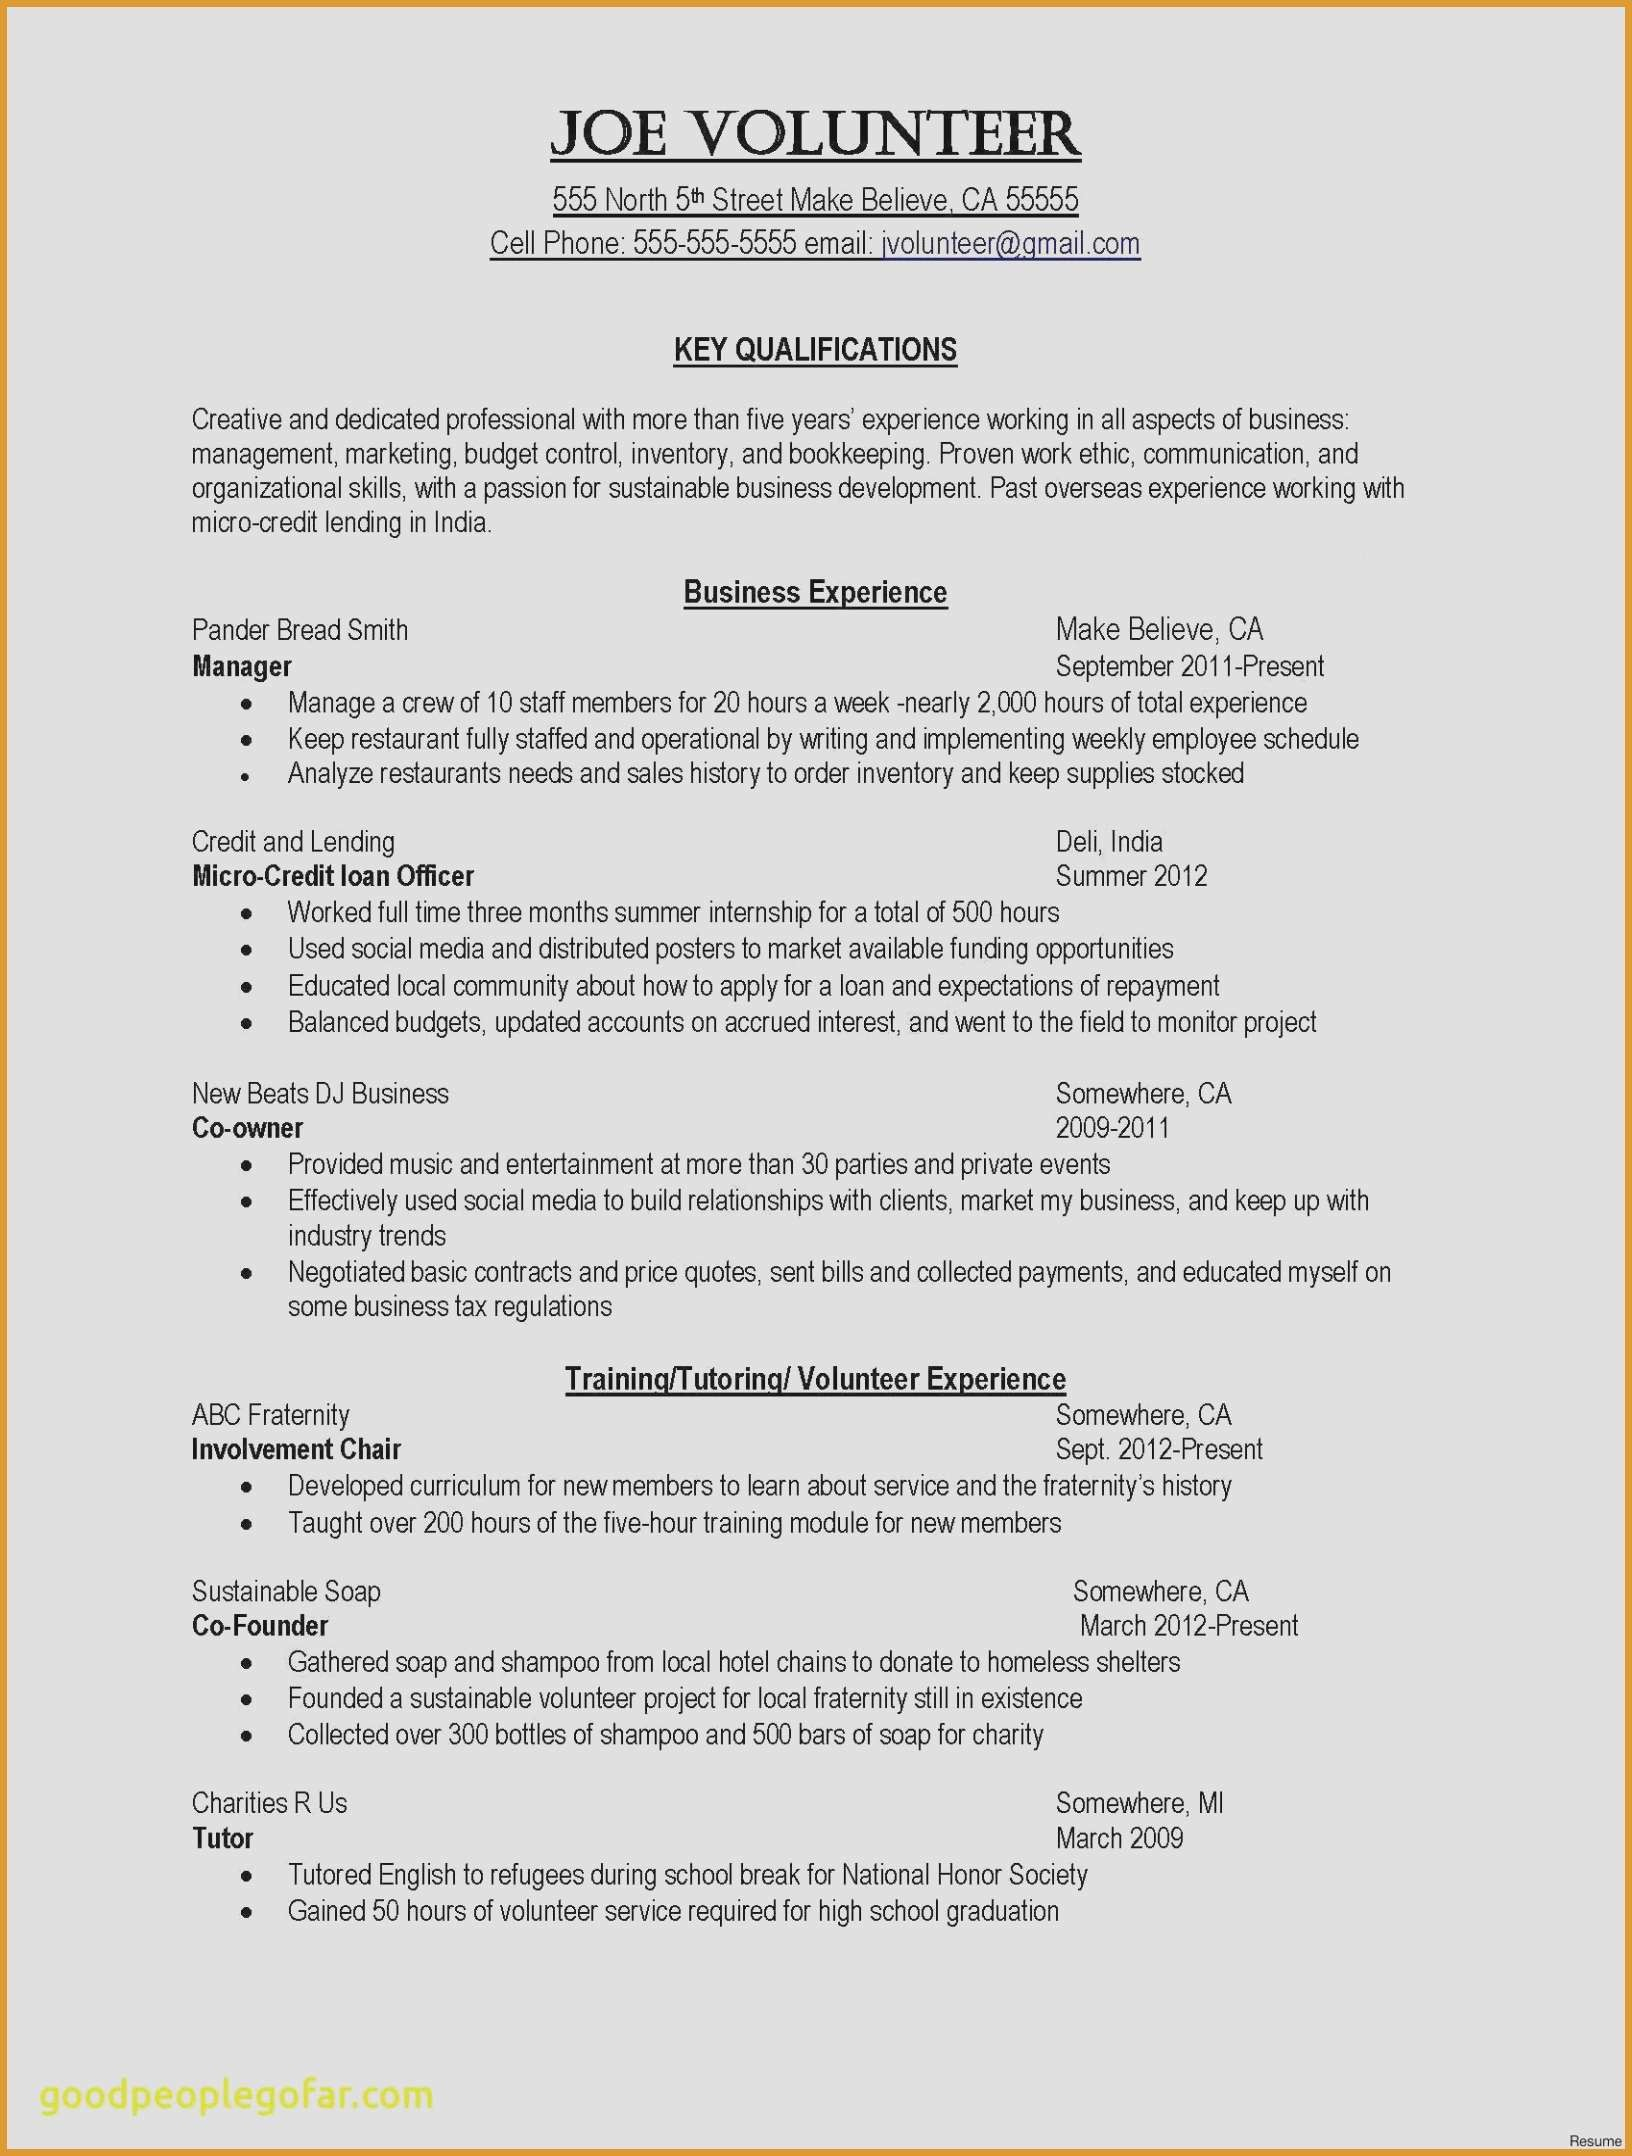 Resume for Summer Internship - Inventory Control Resume Beautiful Resumes Skills Examples Resume